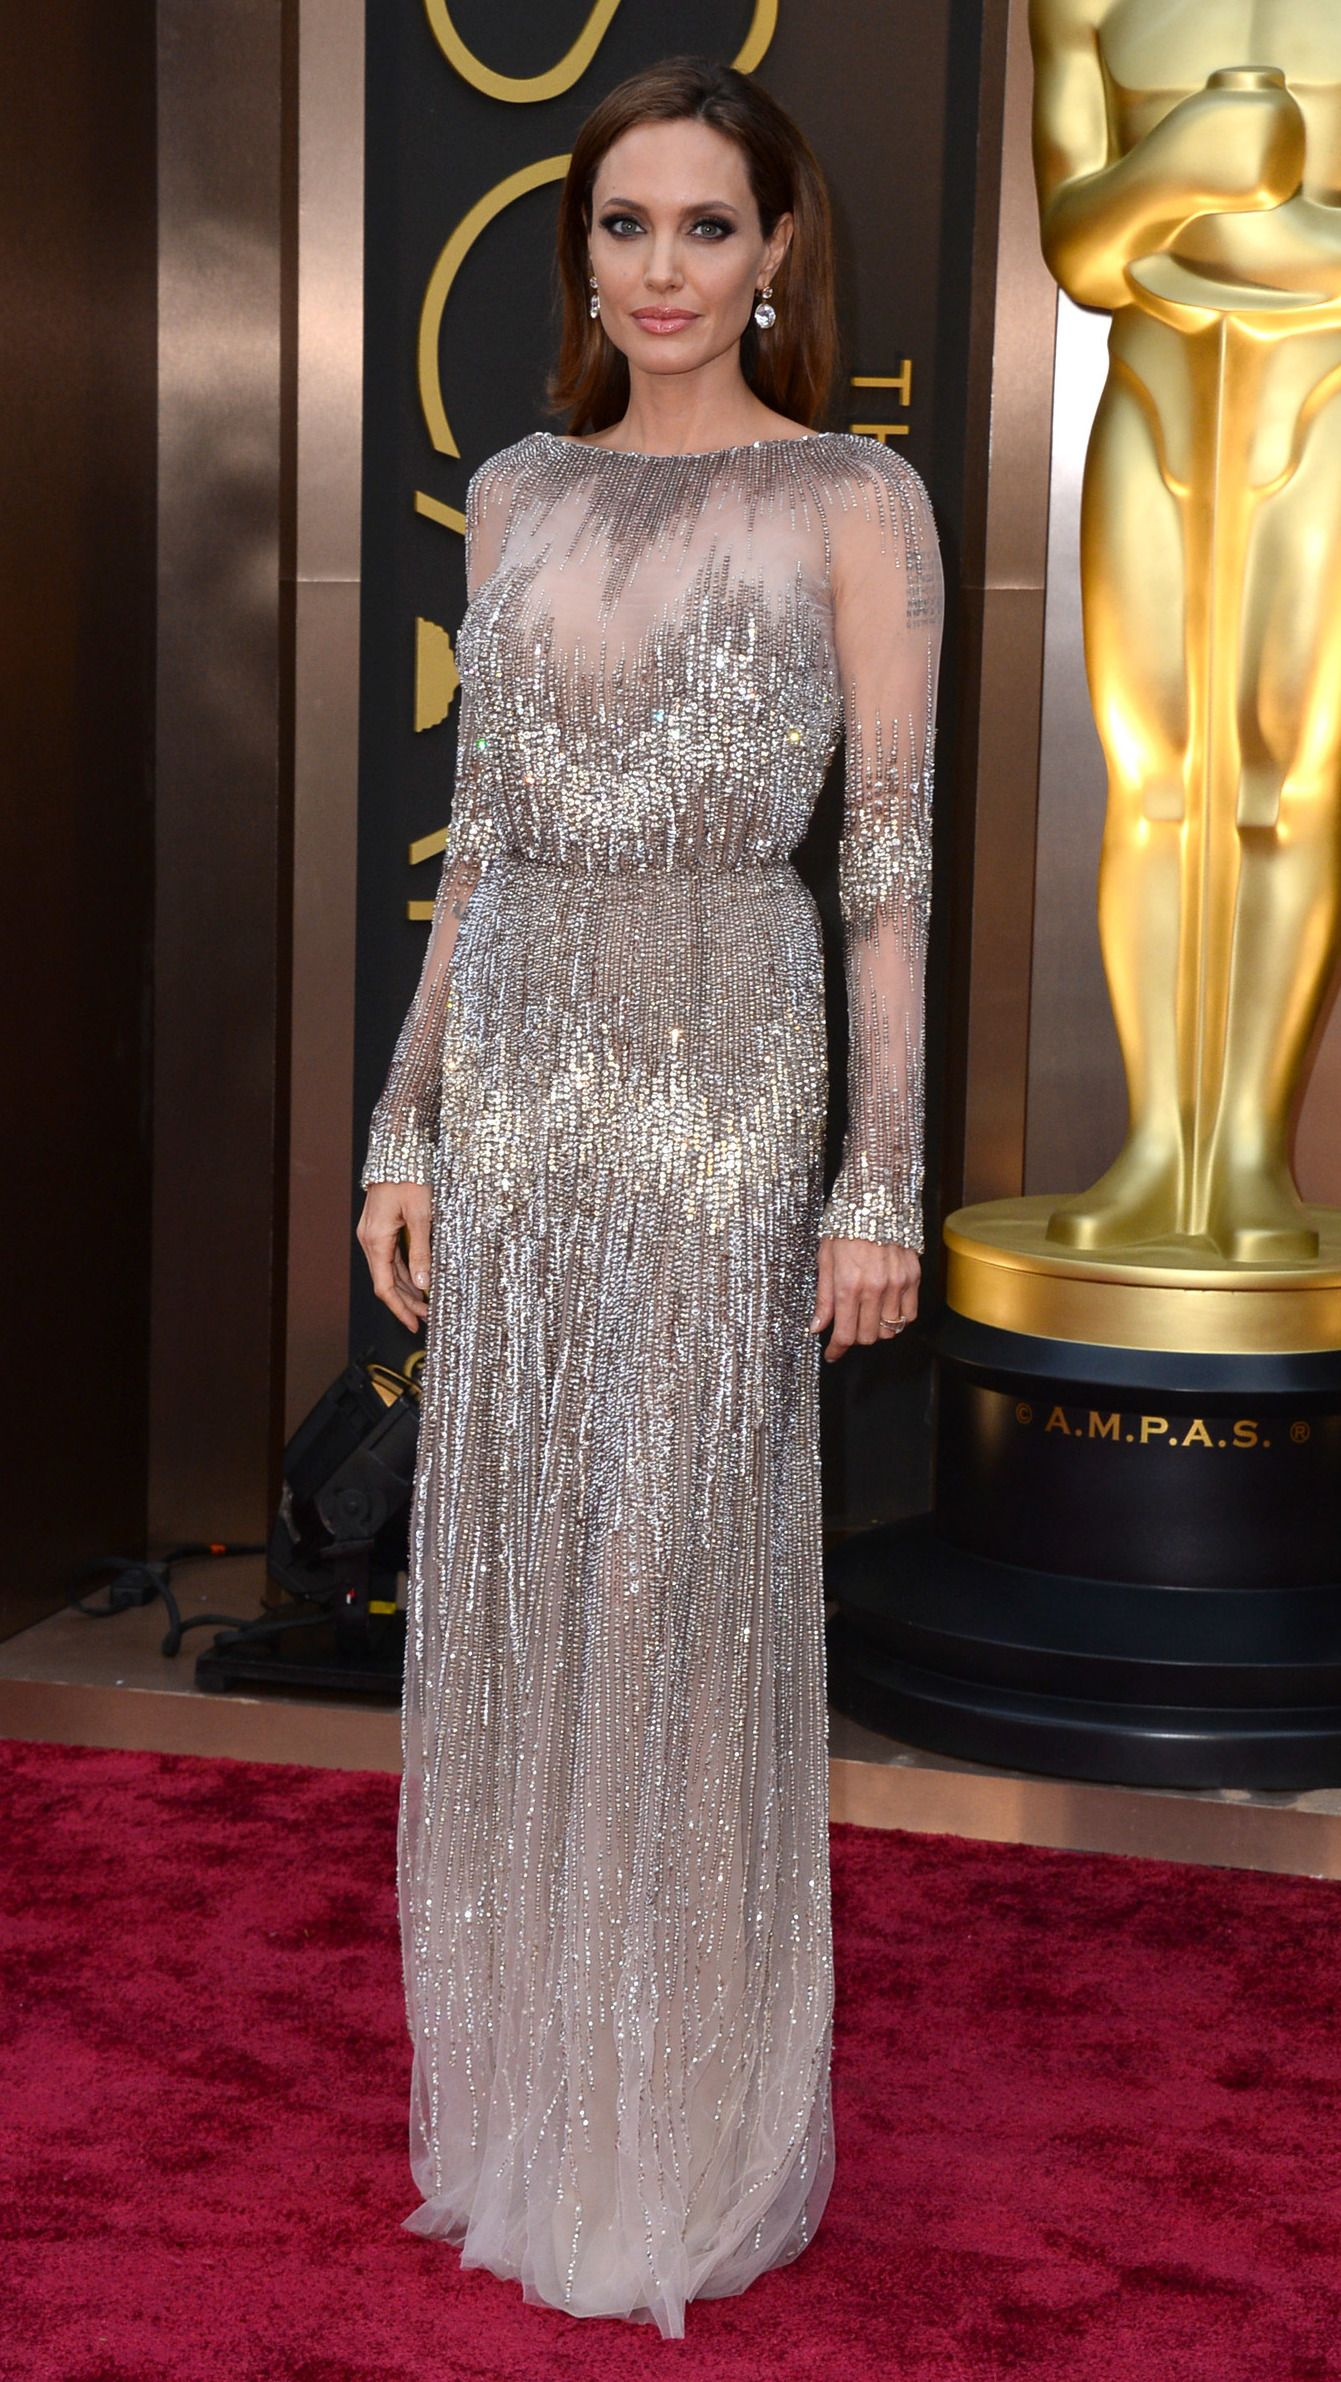 Our 2014 Style Awards: The Year's Best Dressed Our 2014 Style Awards: The Year's Best Dressed new pictures